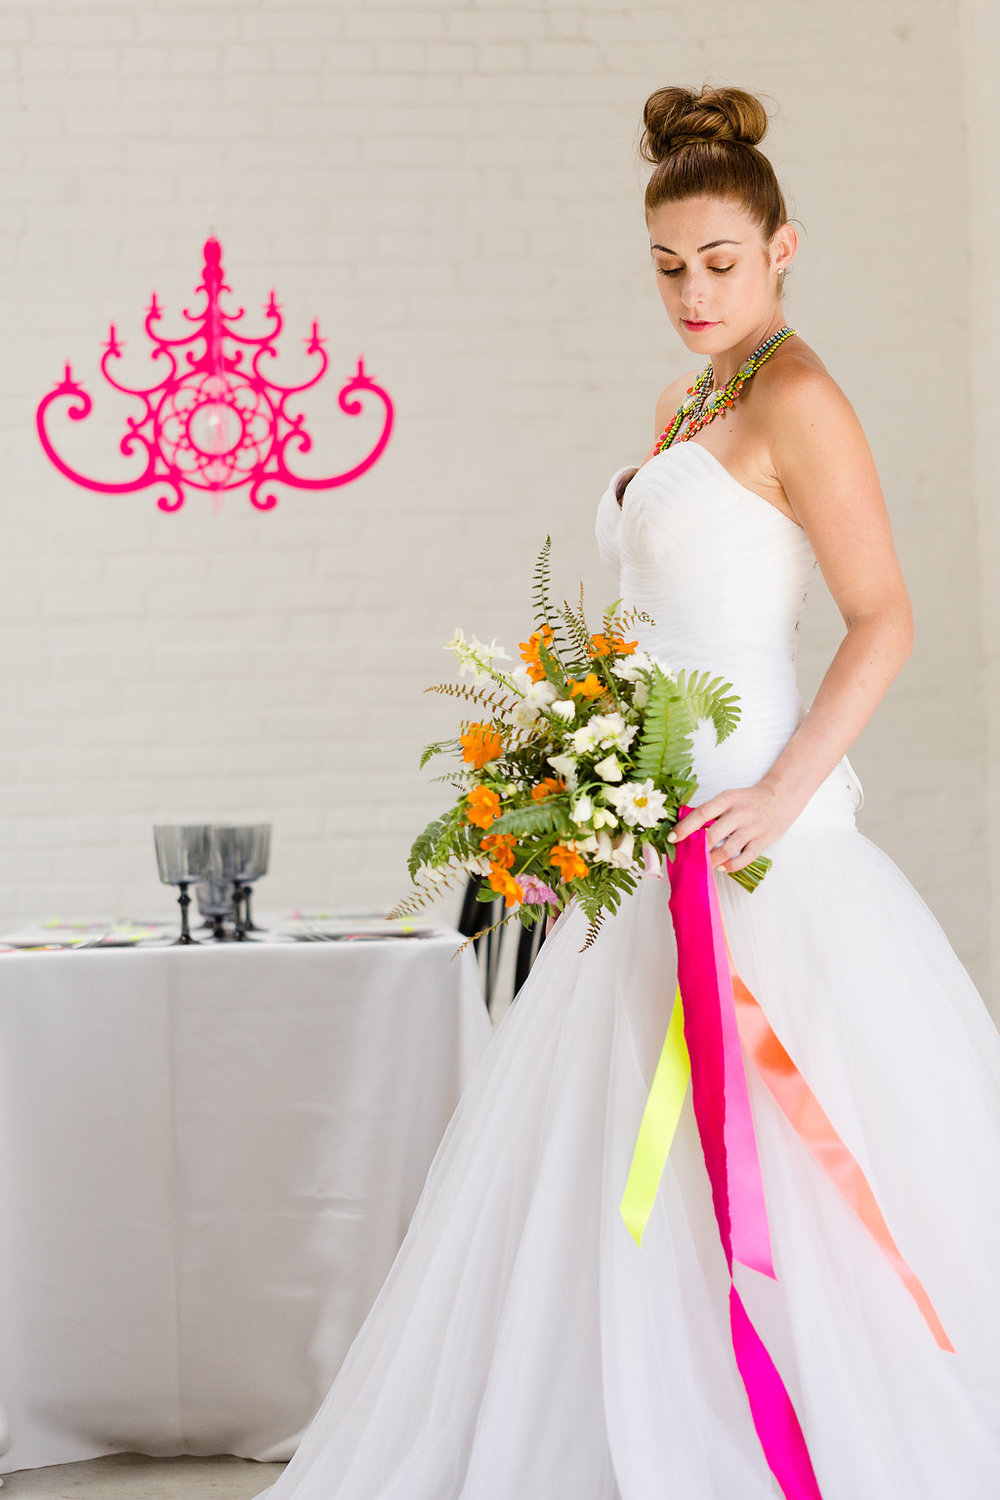 Neon Wedding Inspiration : Incorporate Pops of Color into Your Wedding Day / photo by Jessica Haley Photography